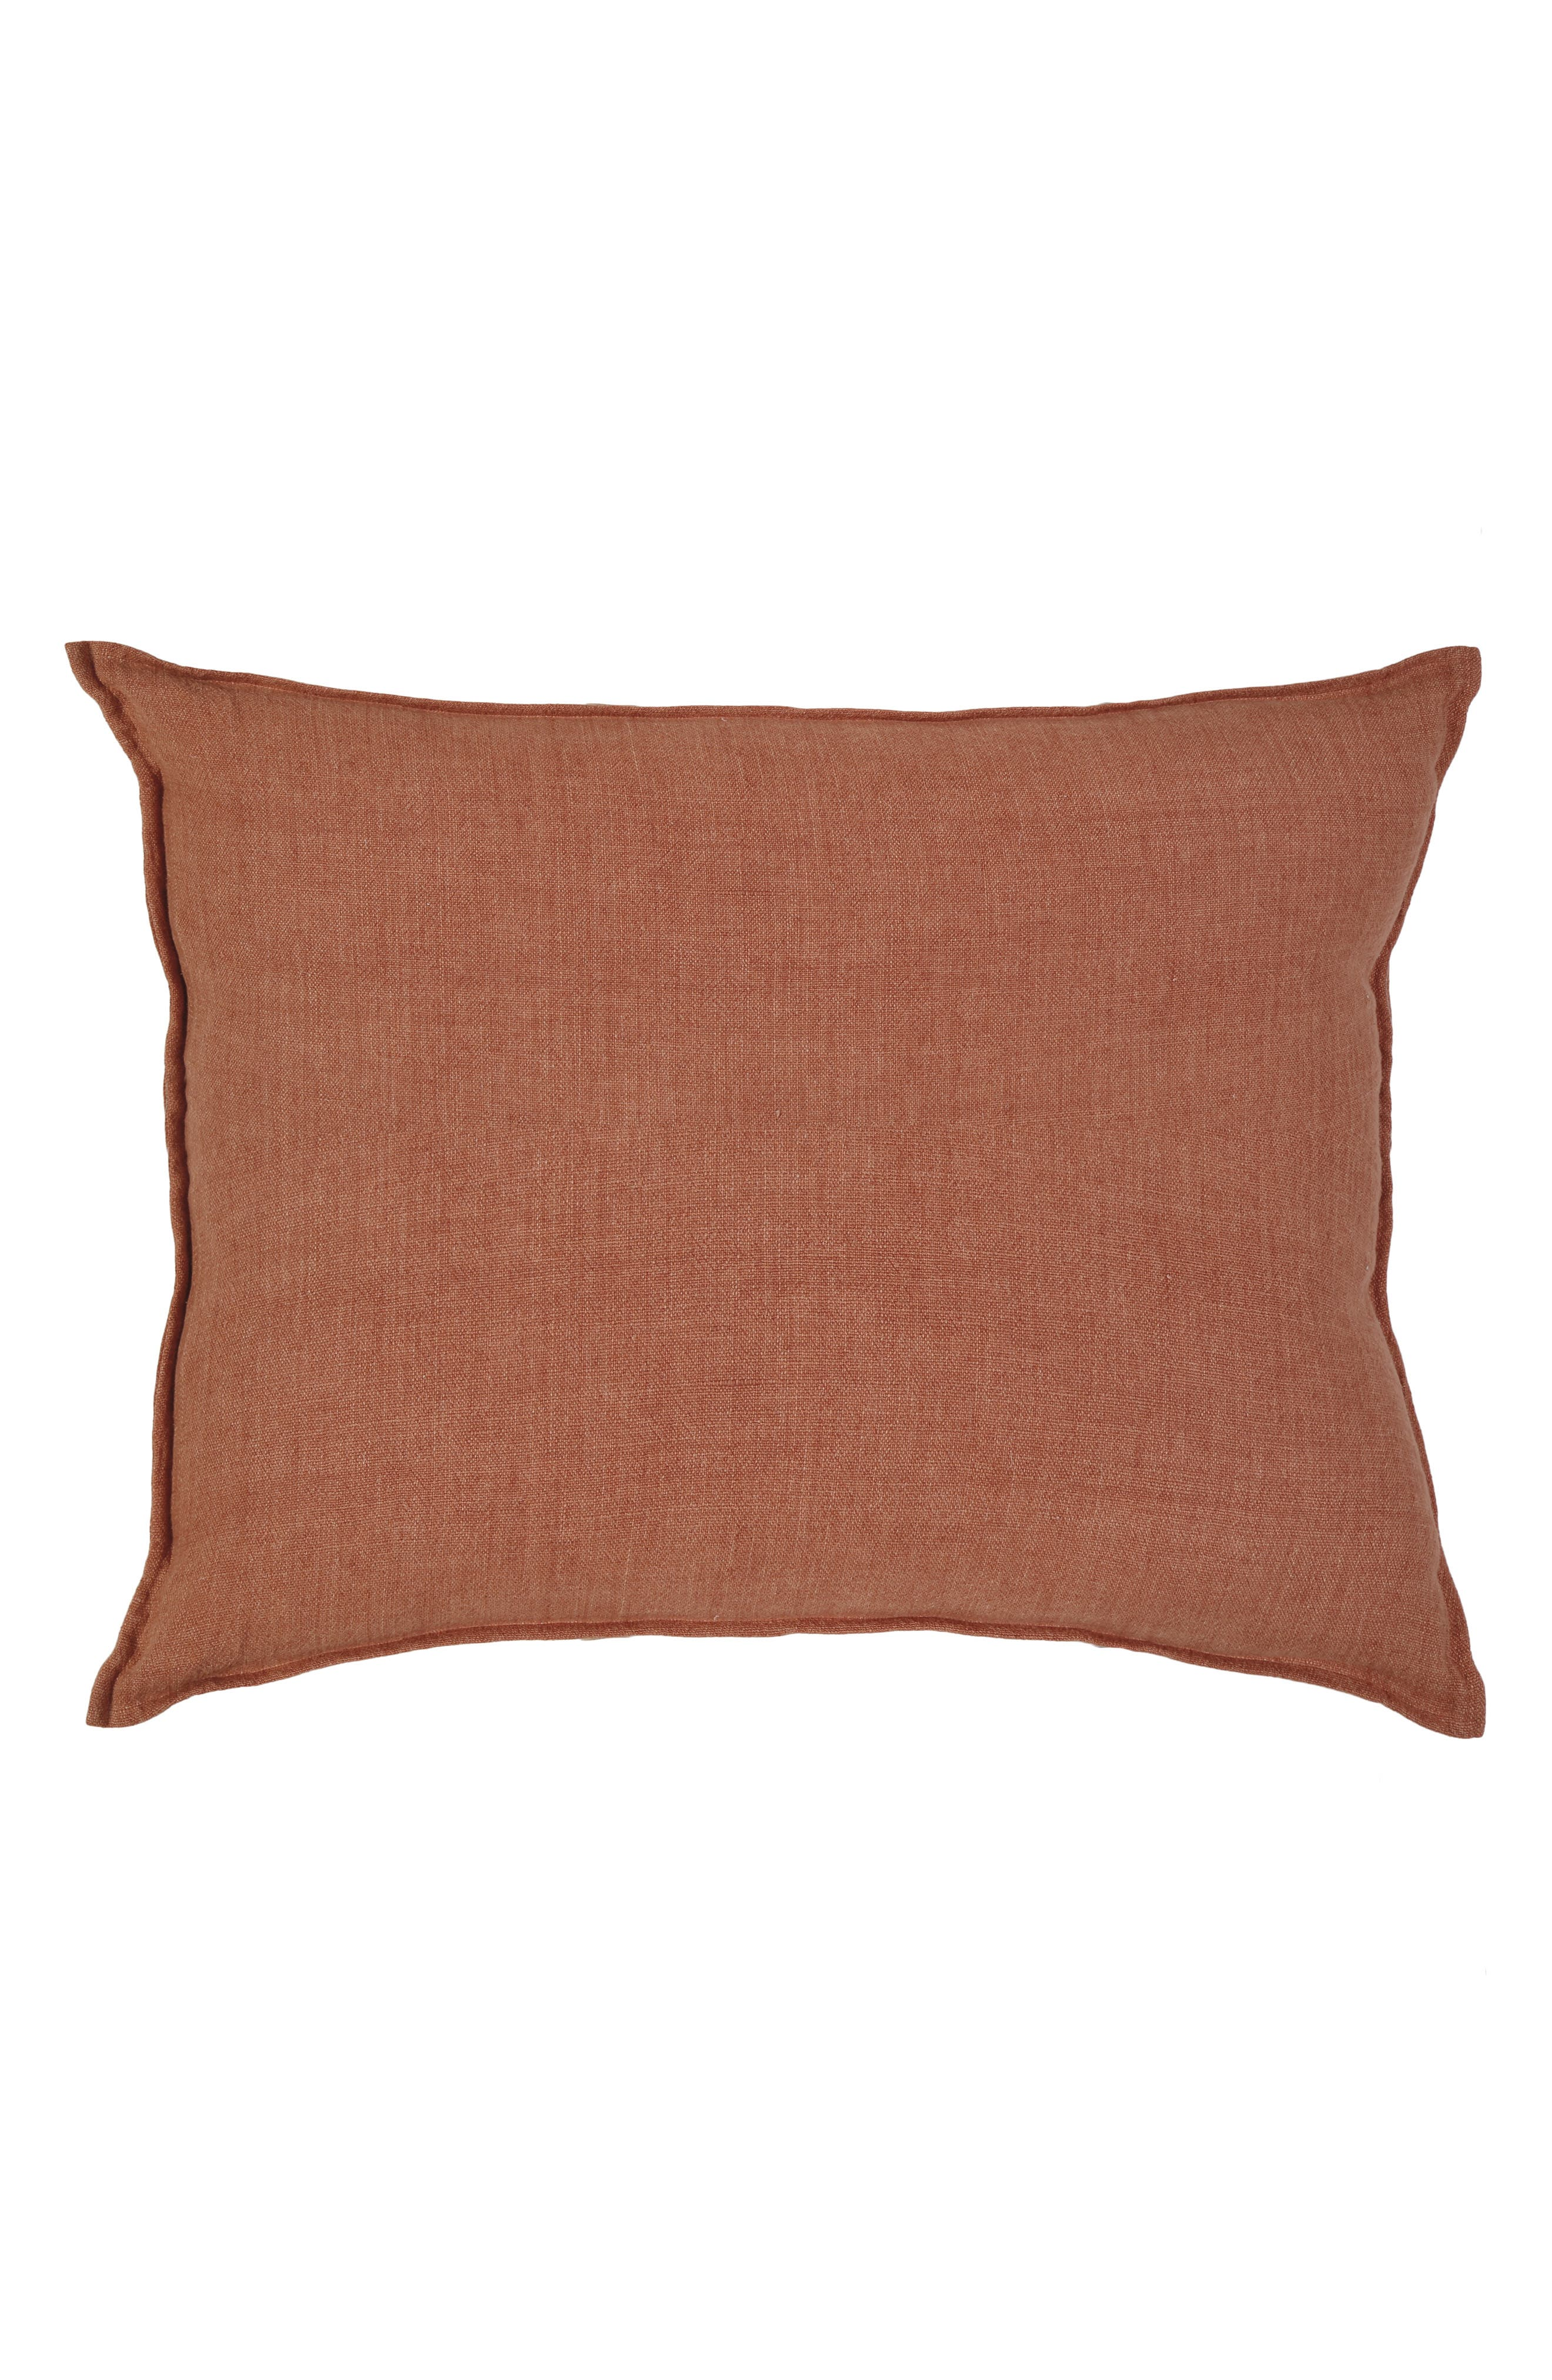 POM POM AT HOME Montauk Accent Pillow, Main, color, TERRA COTTA